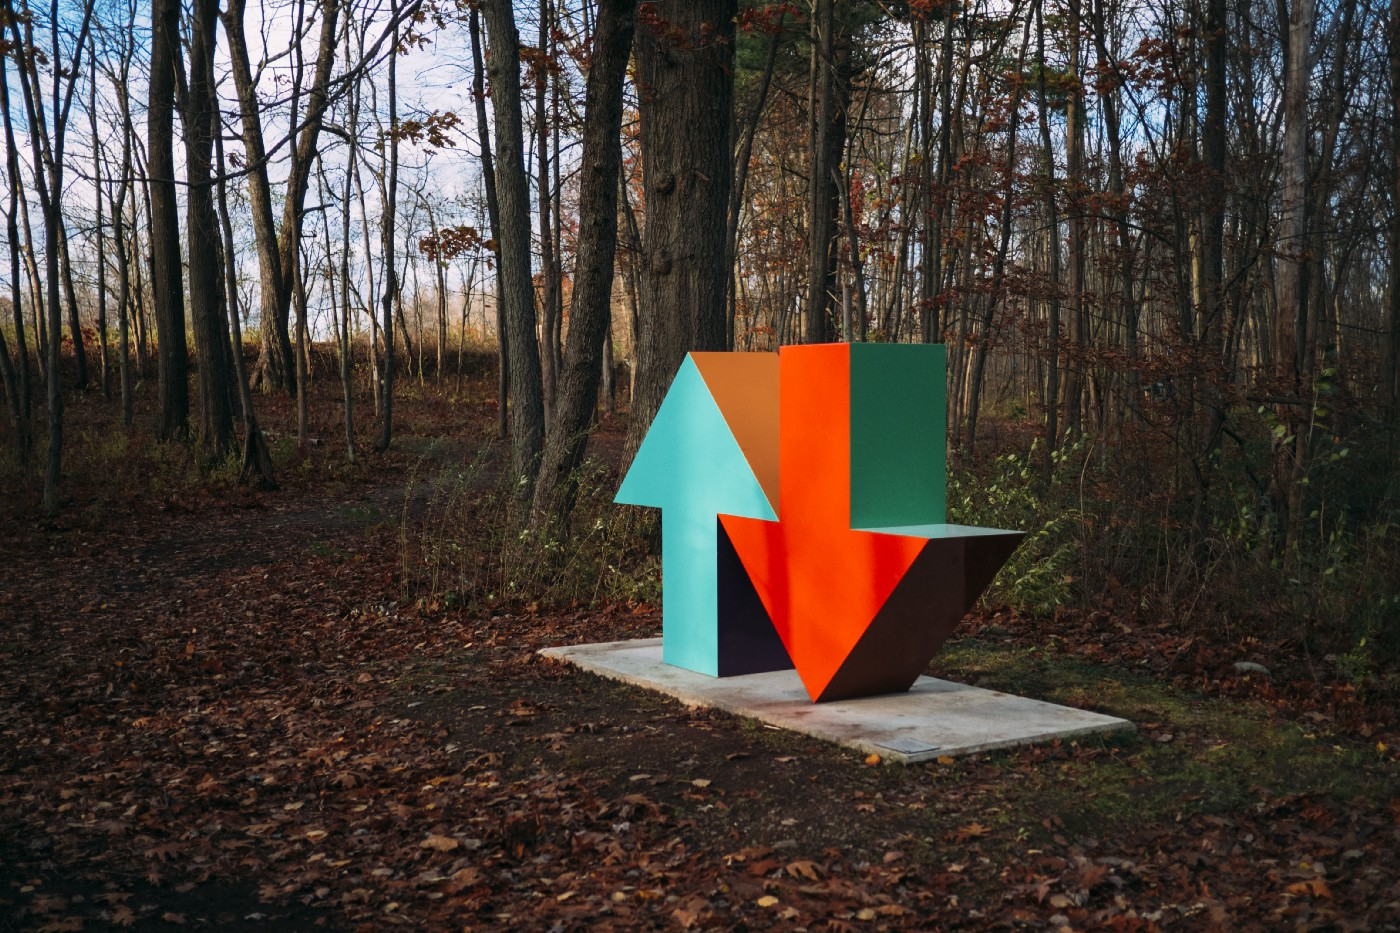 A sculpture of two arrows in woodland